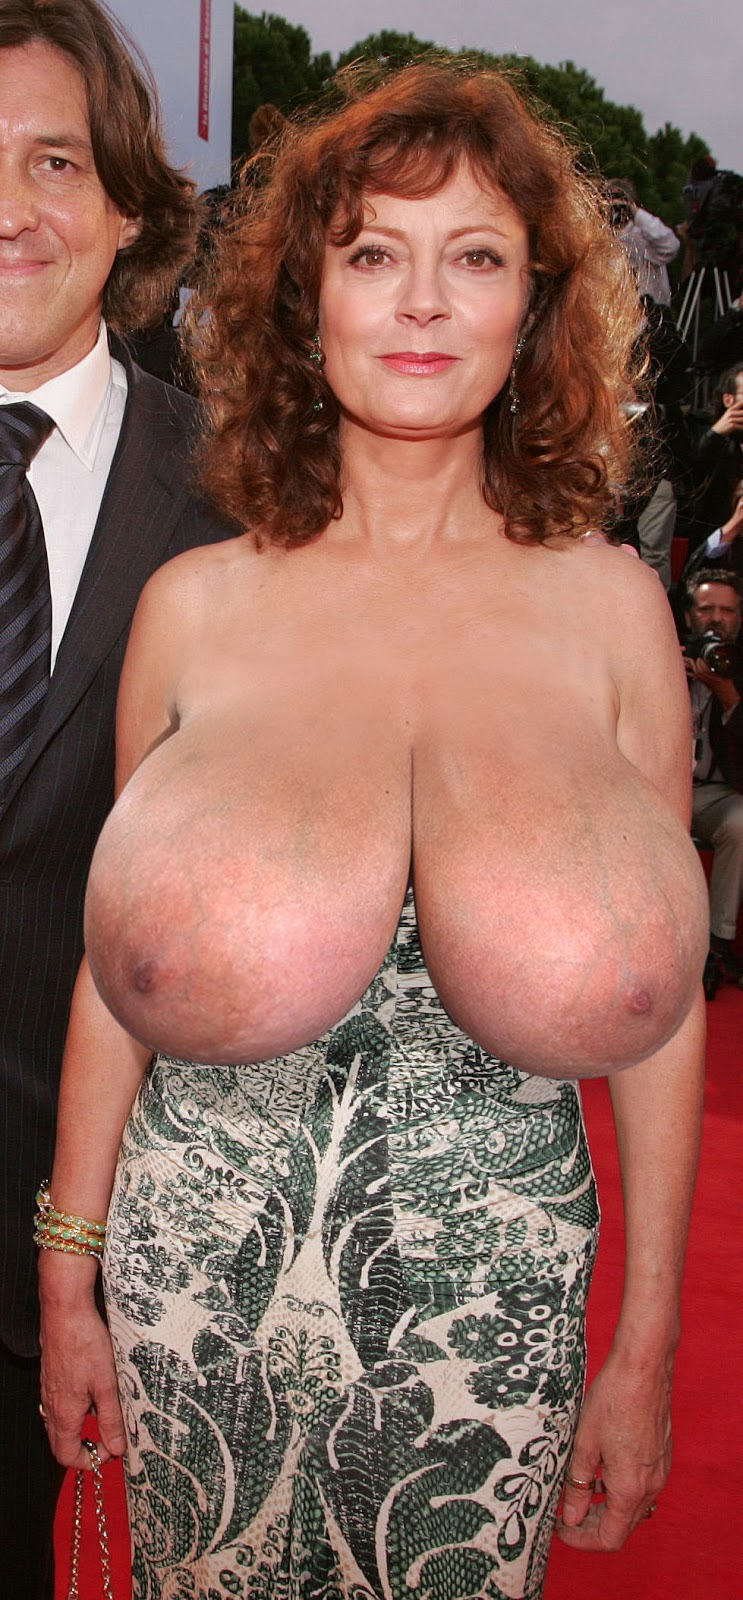 Susan sarandon fake nude porn sorry, that